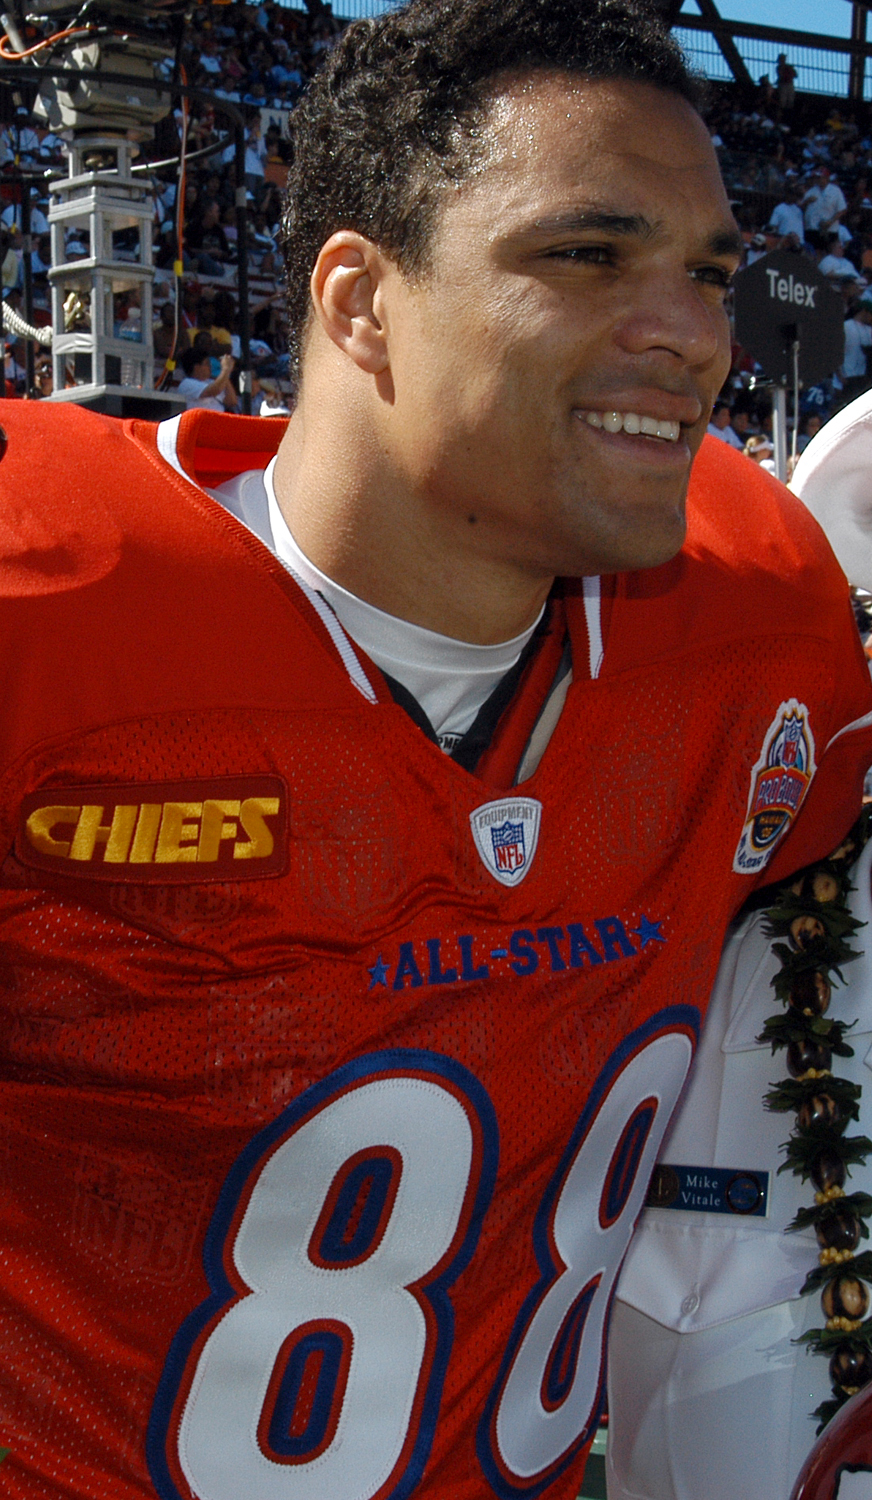 Kansas City Chief's Tight End Tony Gonzalez prior to the kickoff of the 2005 NFL Pro Bowl held in Honolulu, Hawaii. Commander, U.S. Pacific Command, Admiral Thomas Fargo performed the coin toss to start the game, which also included joint service color guards, a Hawaii Air National Guard F-15 Eagle flyover and a salute to more than 60 Purple Heart recipients. Photo taken by Journalist 3rd Class Ryan C. McGinley, USN, on February 13, 2005.